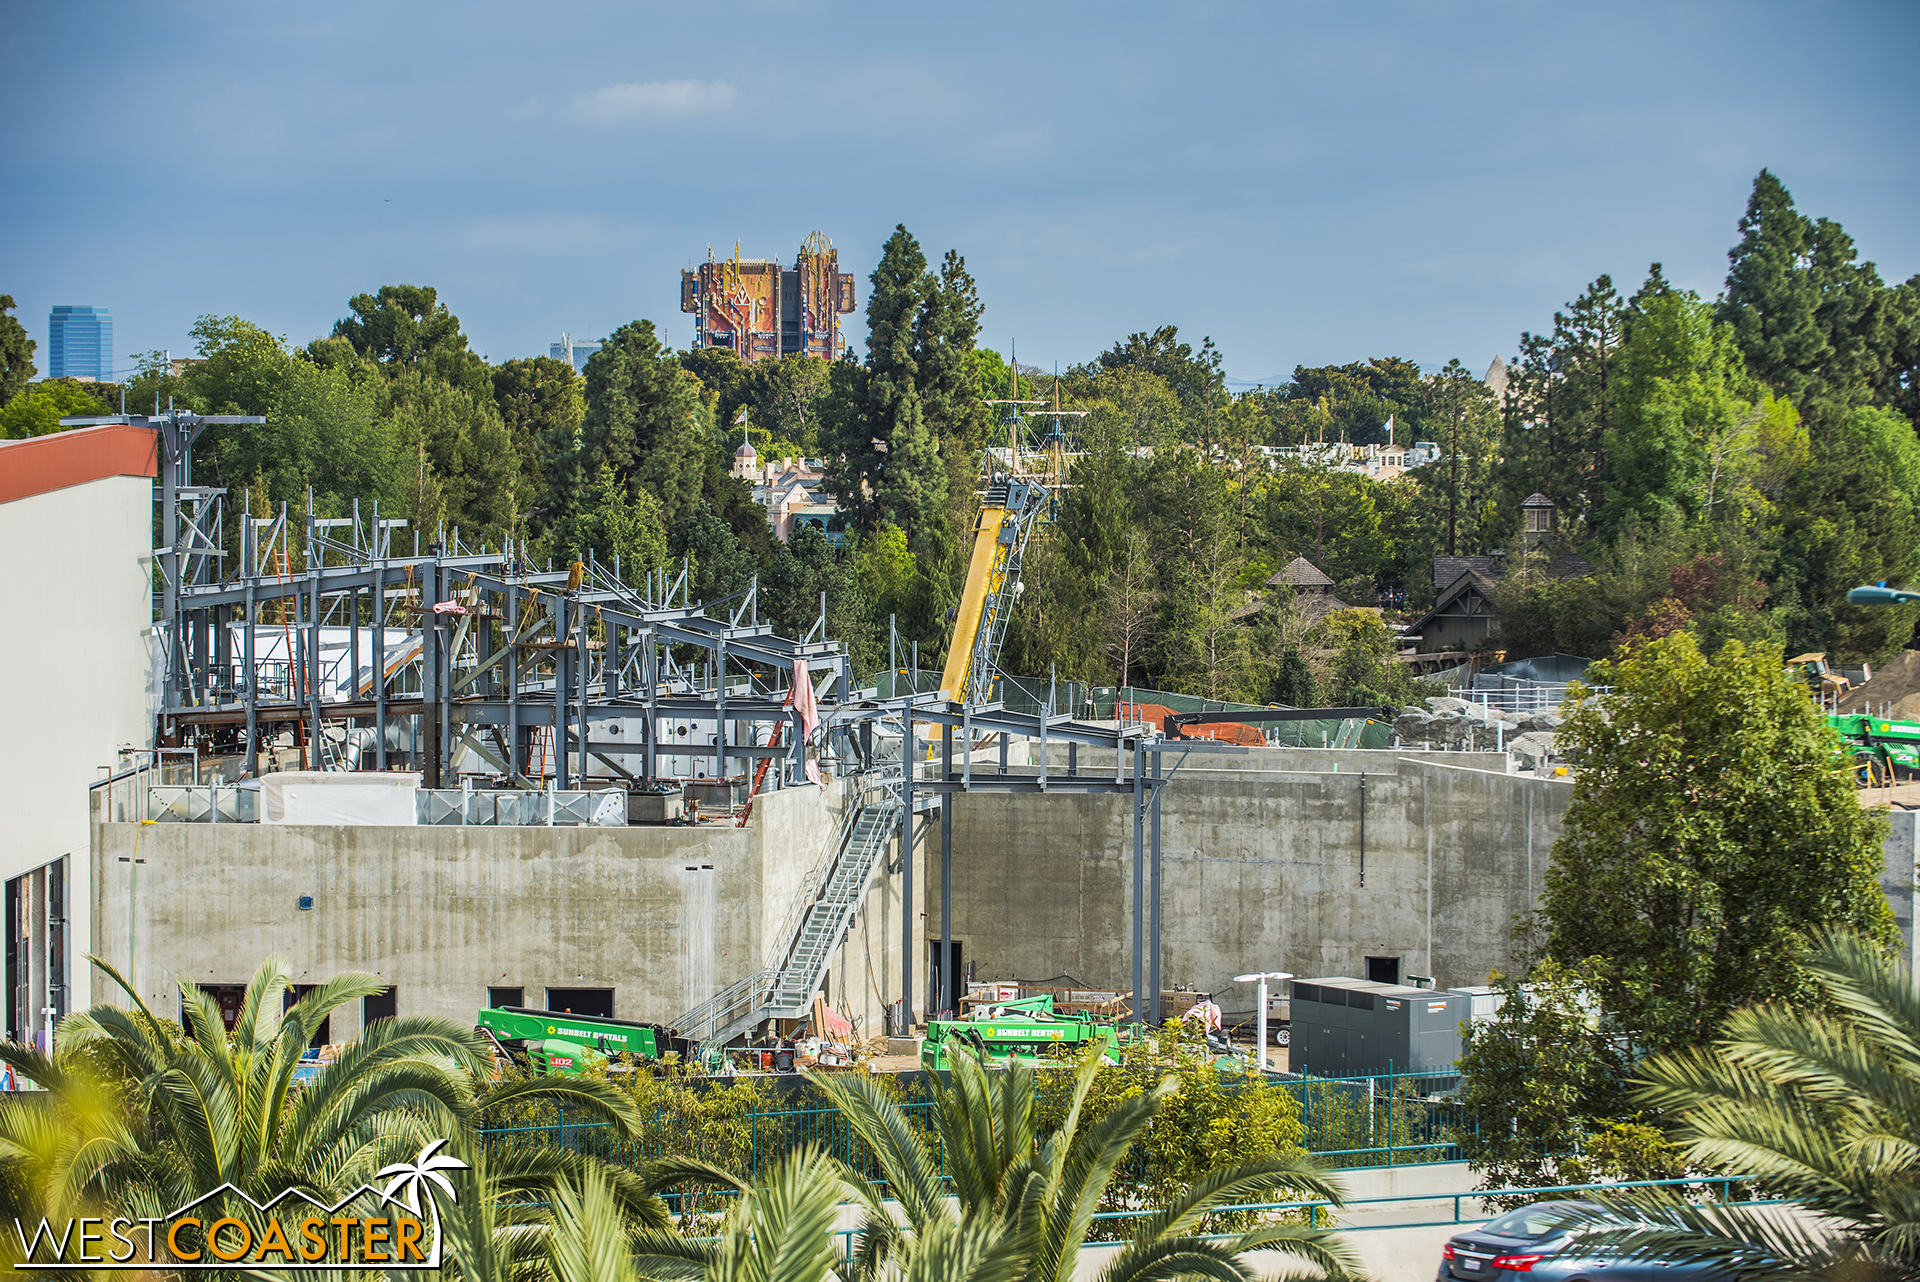 More noticeable development is happening over here at the southwest end of Galaxy's Edge.